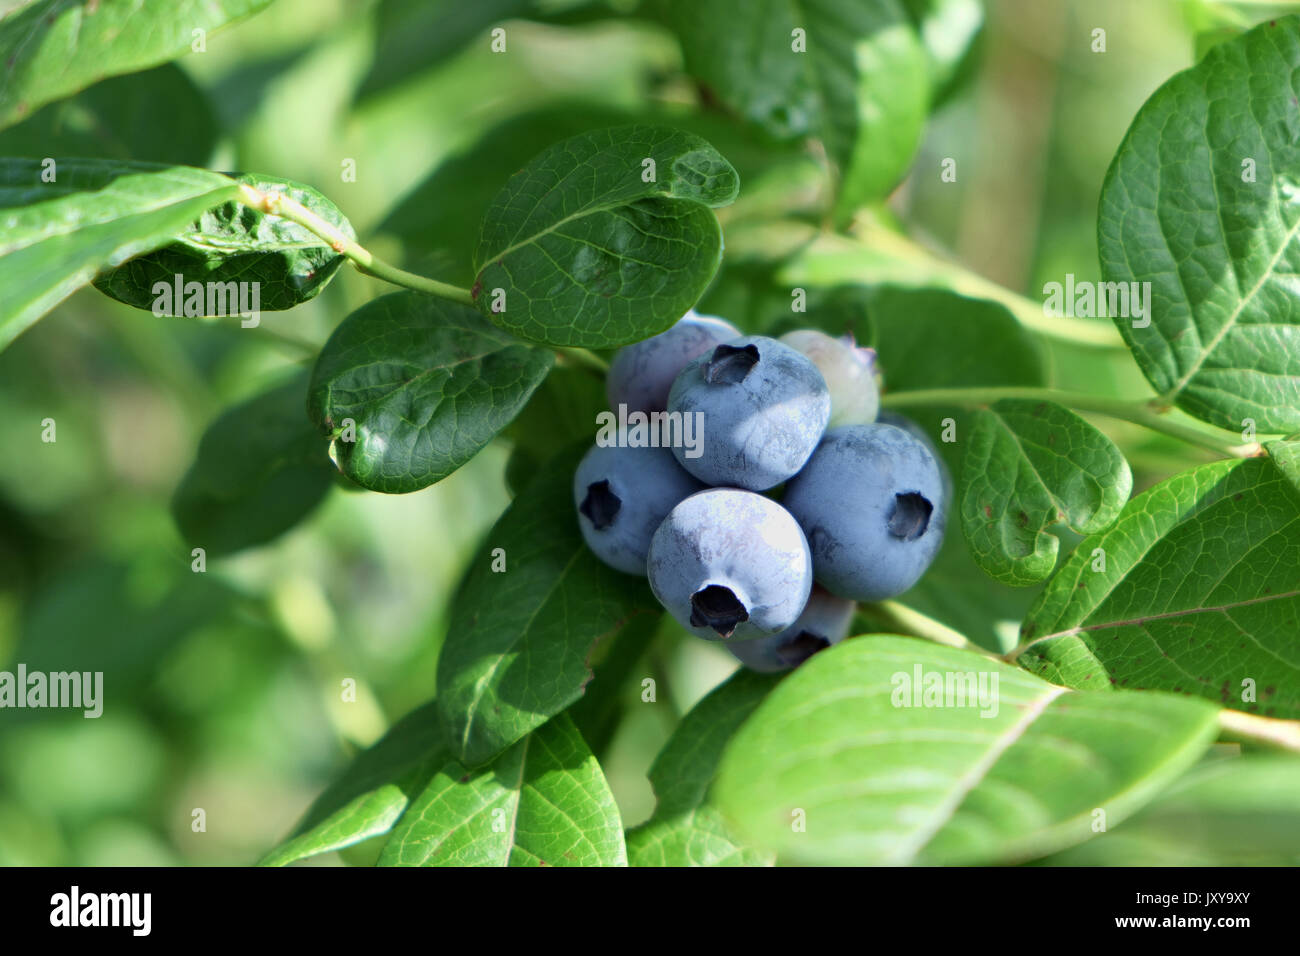 Crop of blueberries with the AB organic label - Stock Image